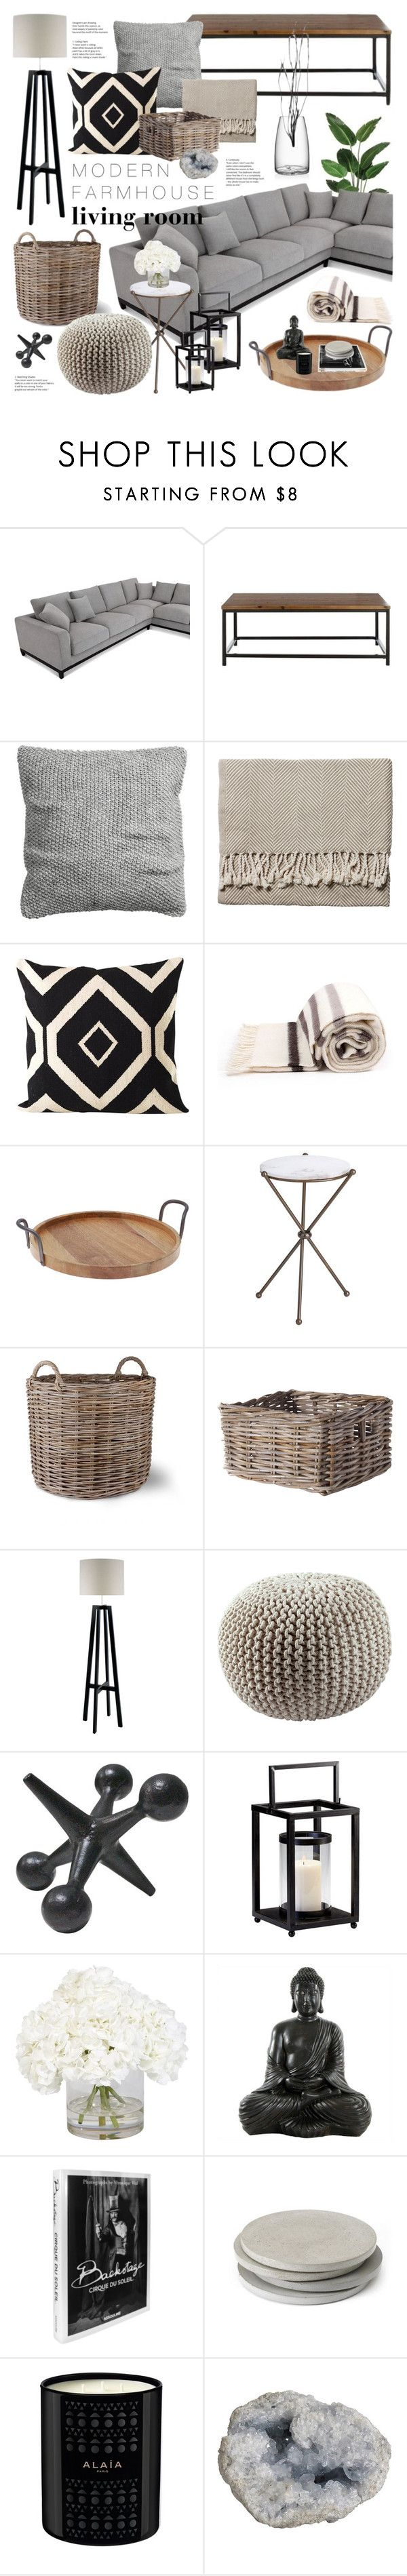 Ideas minday 1 modern farmhouse decorating -  Modern Farmhouse Living Room By Emmy Liked On Polyvore Featuring Interior Interiors